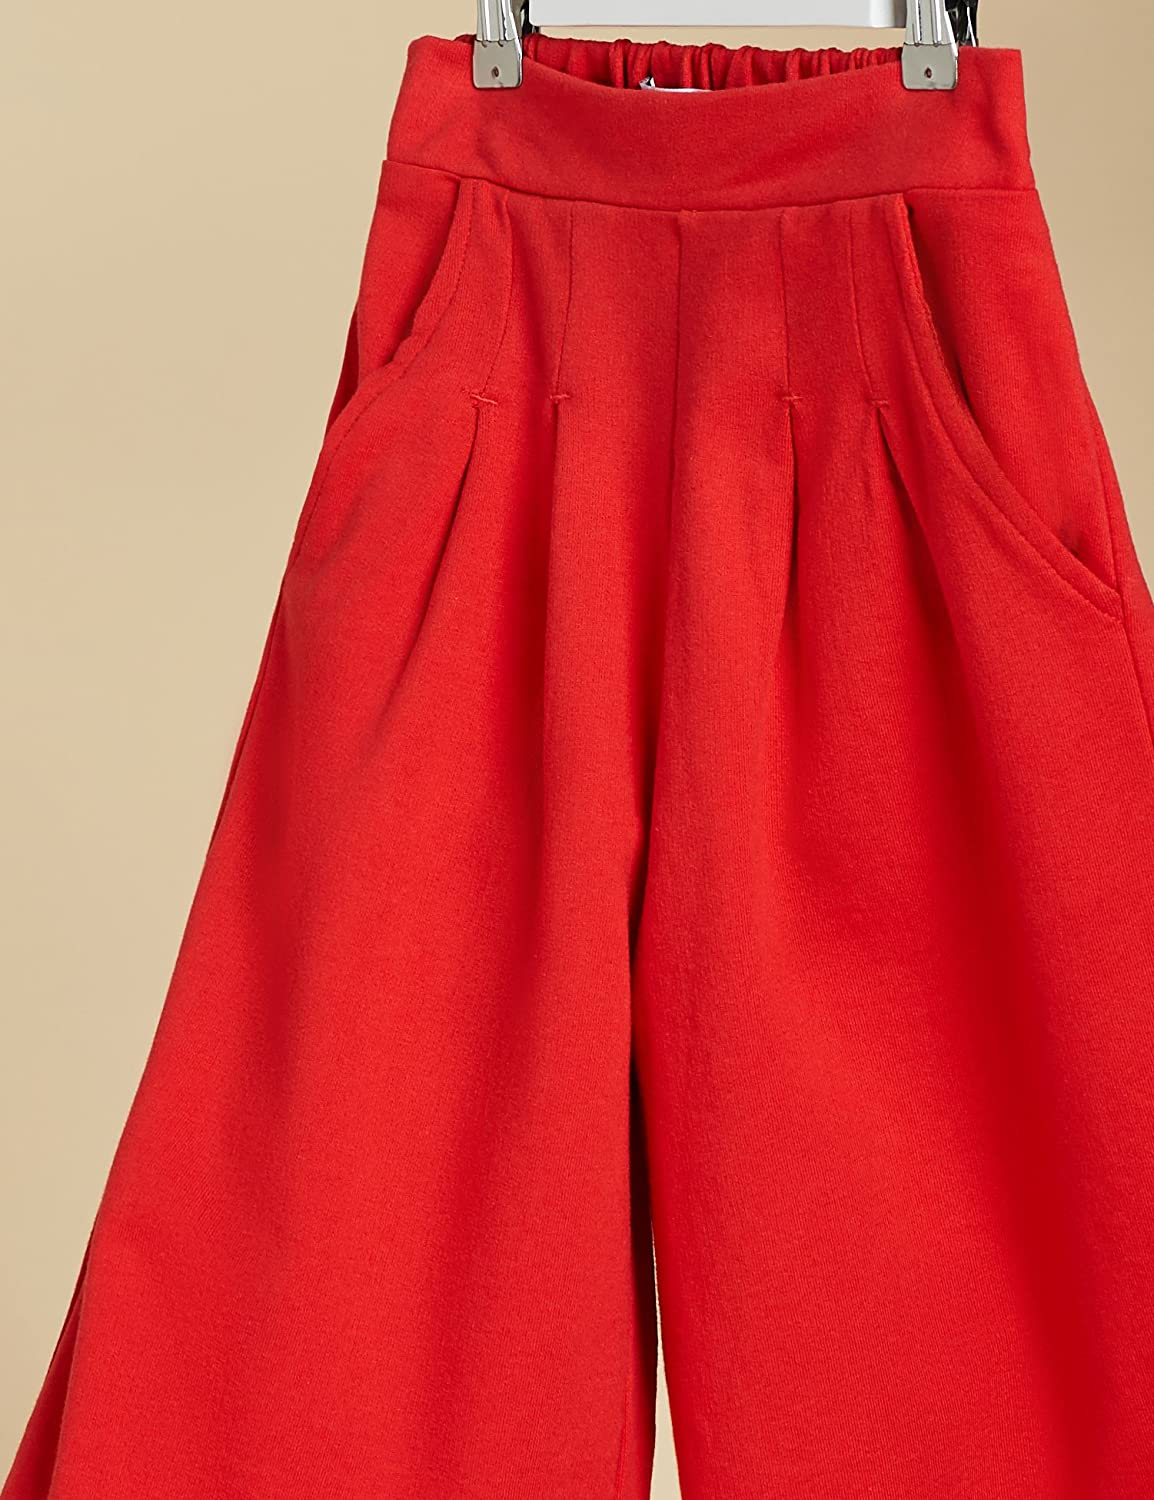 Marchio RED WAGON Pantaloni Flare in Jersey Bambina